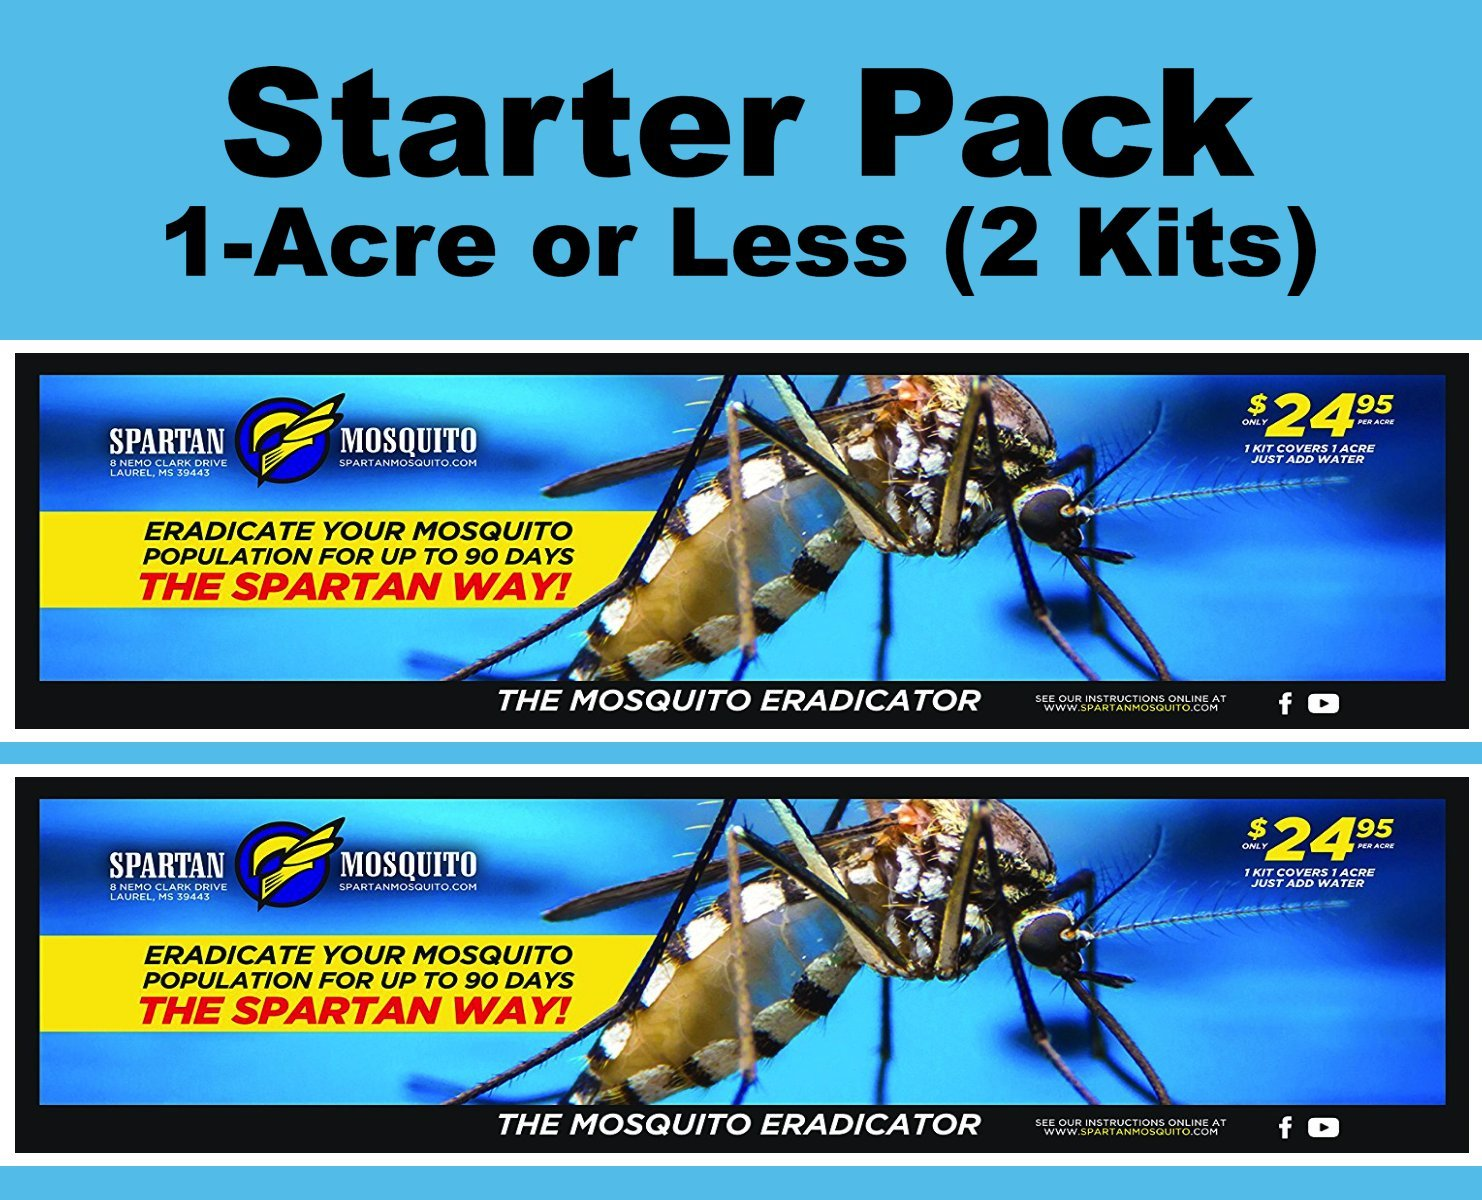 SPARTAN MOSQUITO ERADICATOR Control 1-ACRE STARTER PACK; Best Whole Yard Outdoor Killer Barrier Solution; More Effective Than ShortTerm Insect Repellent MosquitoFree Backyard Garden Patio